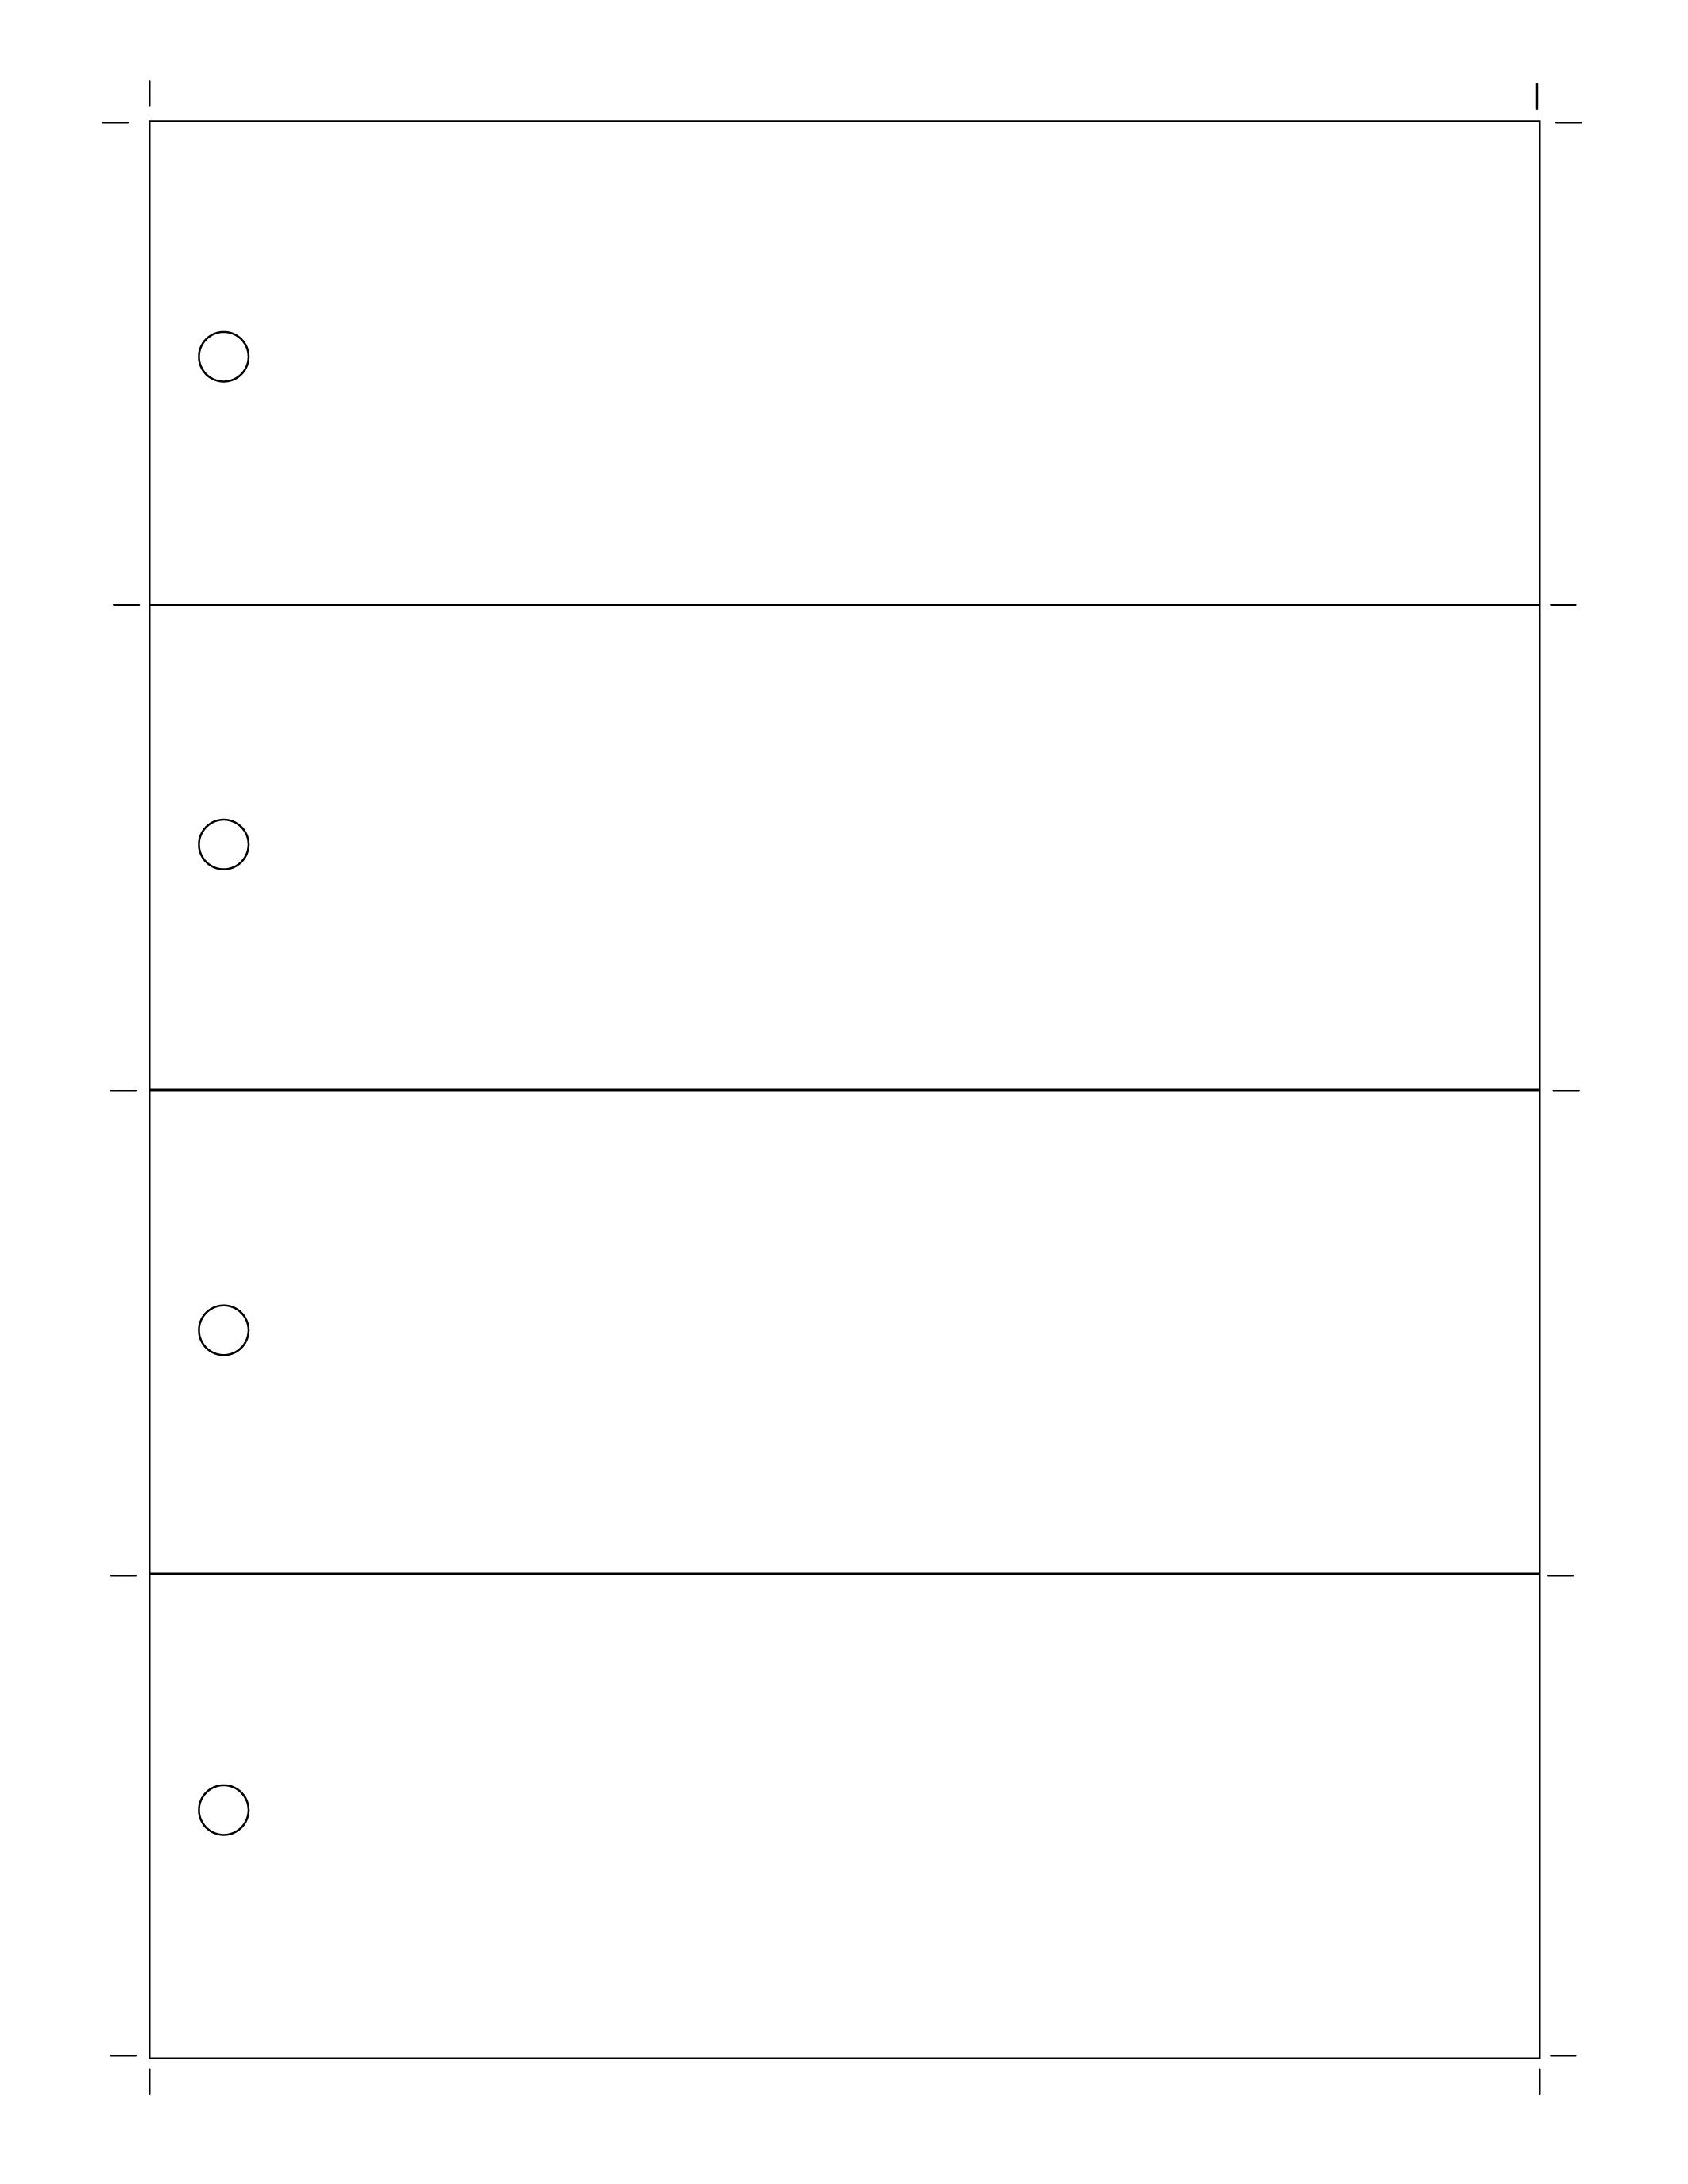 Pin By Cathy Novicky On Teaching Ideas Free Printable Bookmarks Templates Bookmark Template Free Printable Bookmarks Microsoft word blank bookmark template